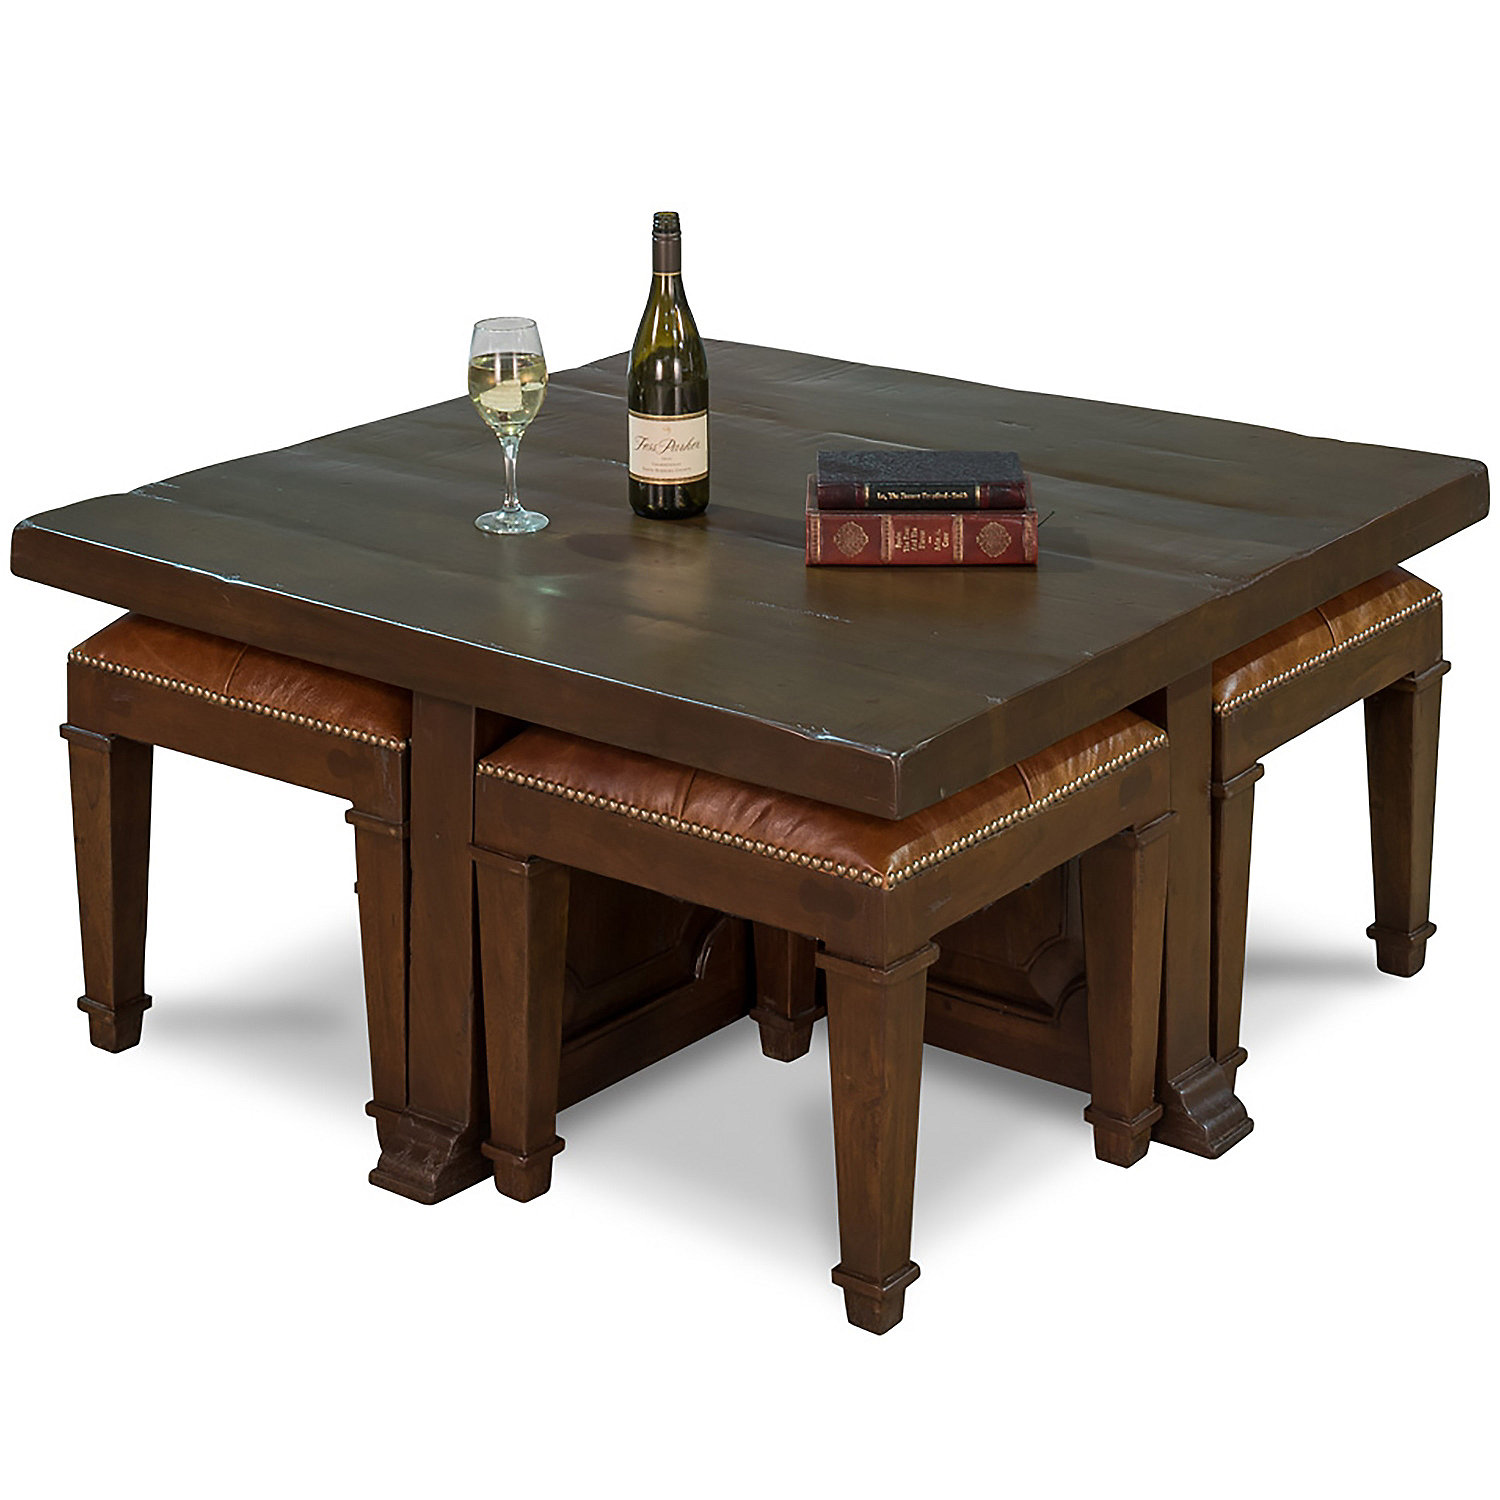 Coffee table with 4 nesting stools Wine Enthusiast